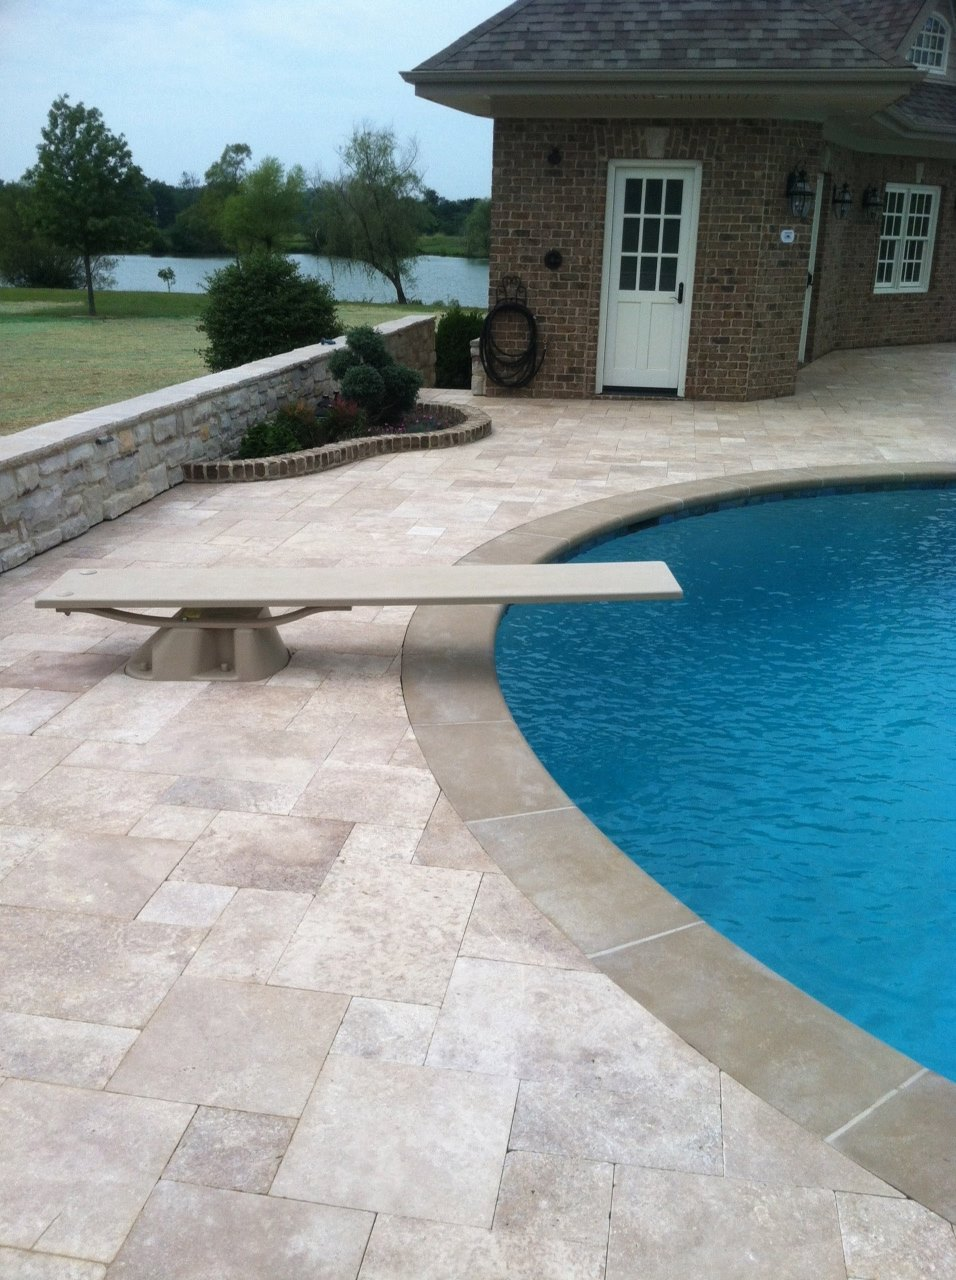 Travertine Pavers For Pool. Travertine Pool Deck